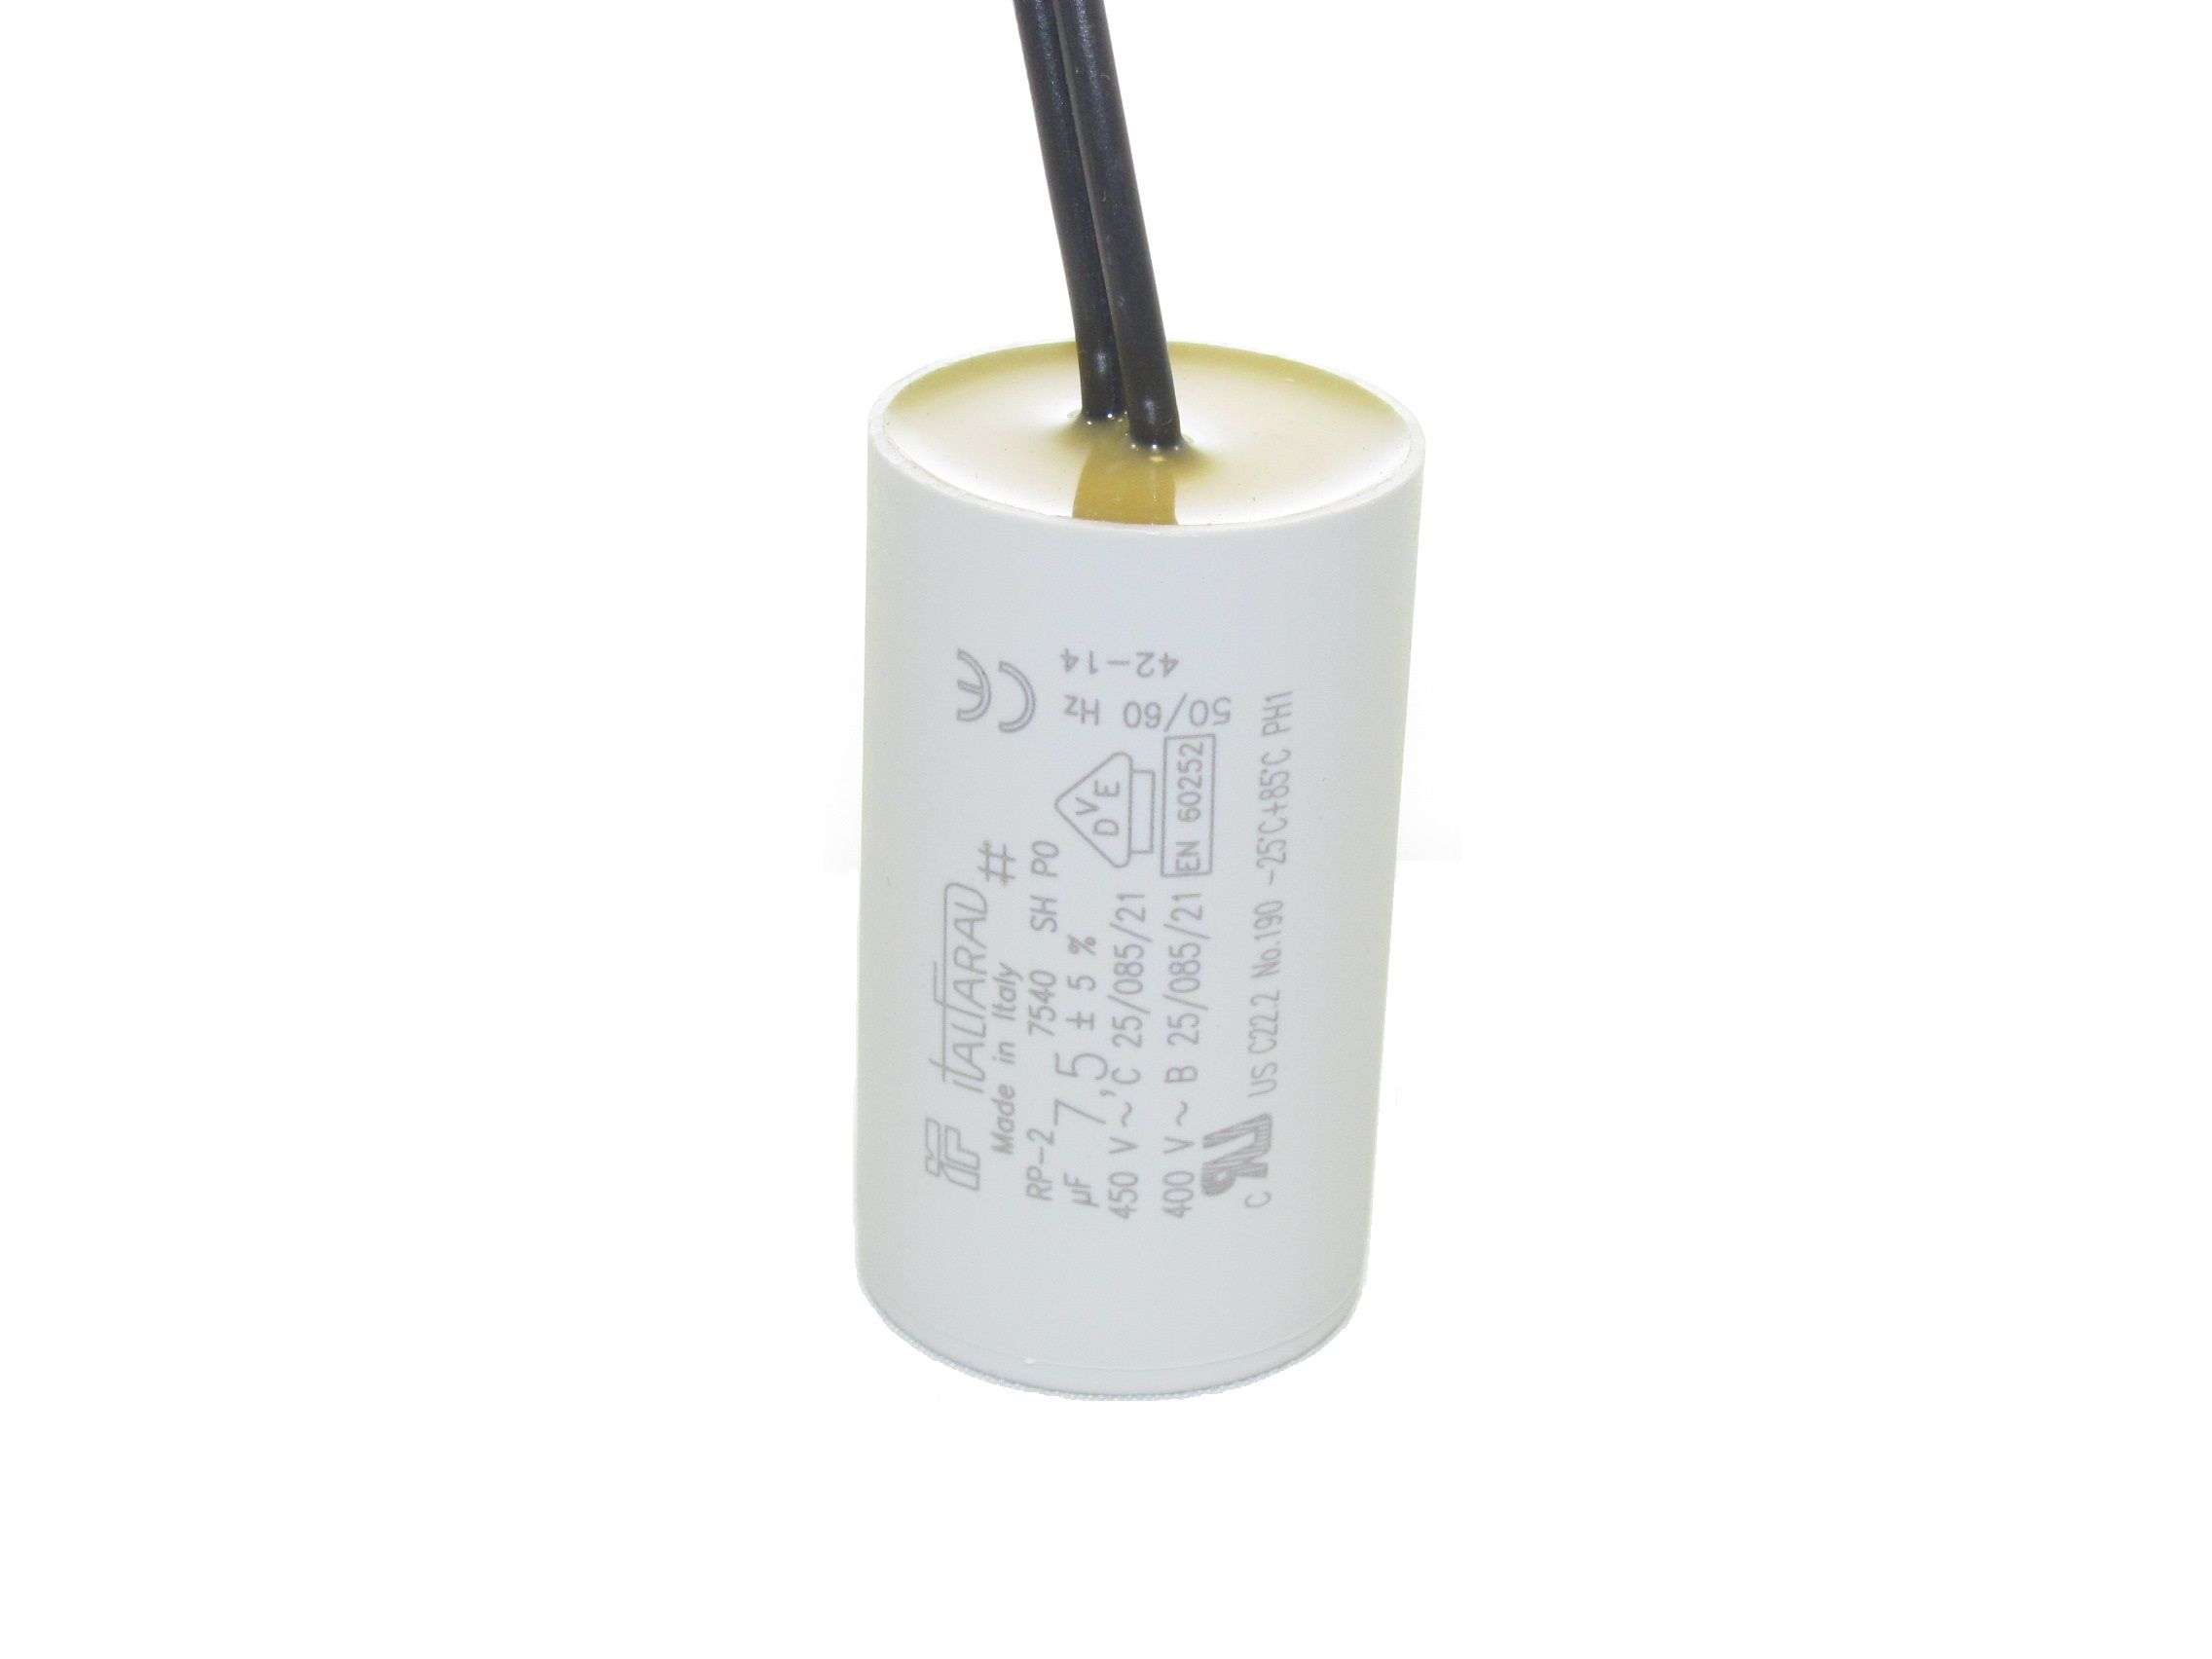 Italfarad RPC (Insulated Wire Leads) Capacitors